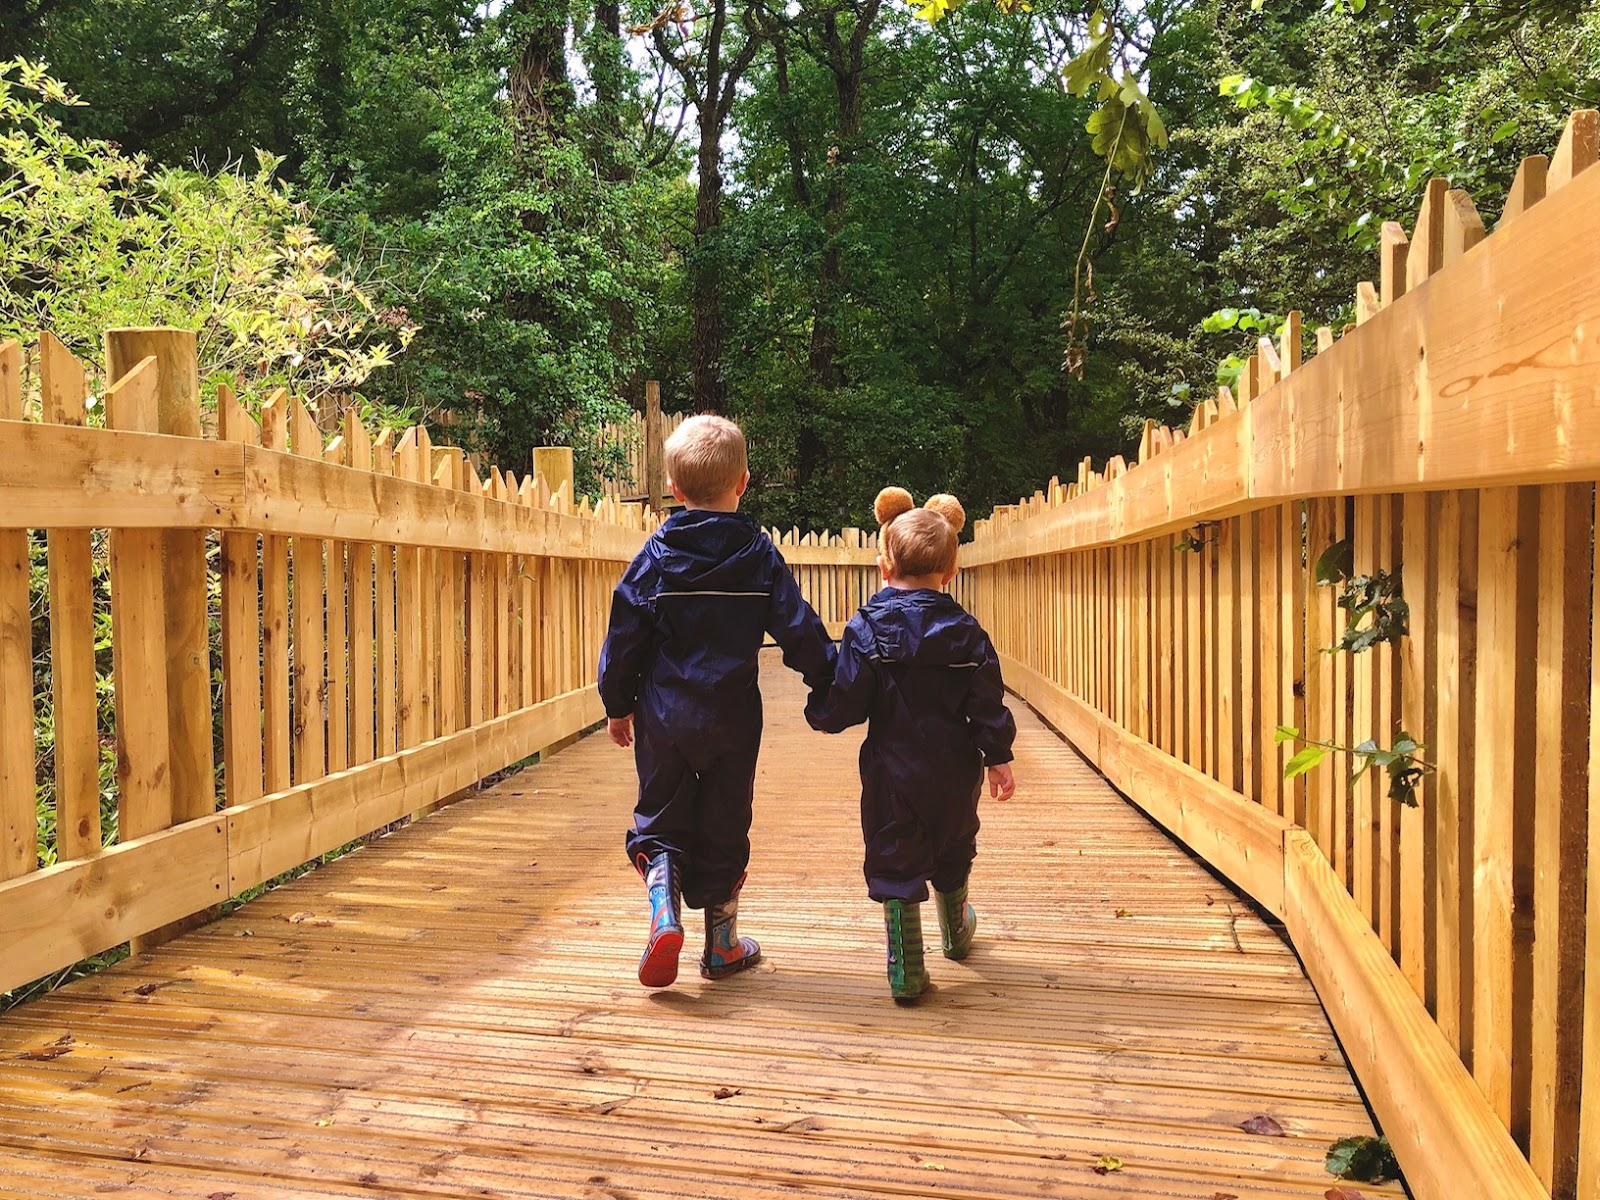 two young children in puddle suits and wellies walking along a wooden treetop walkway